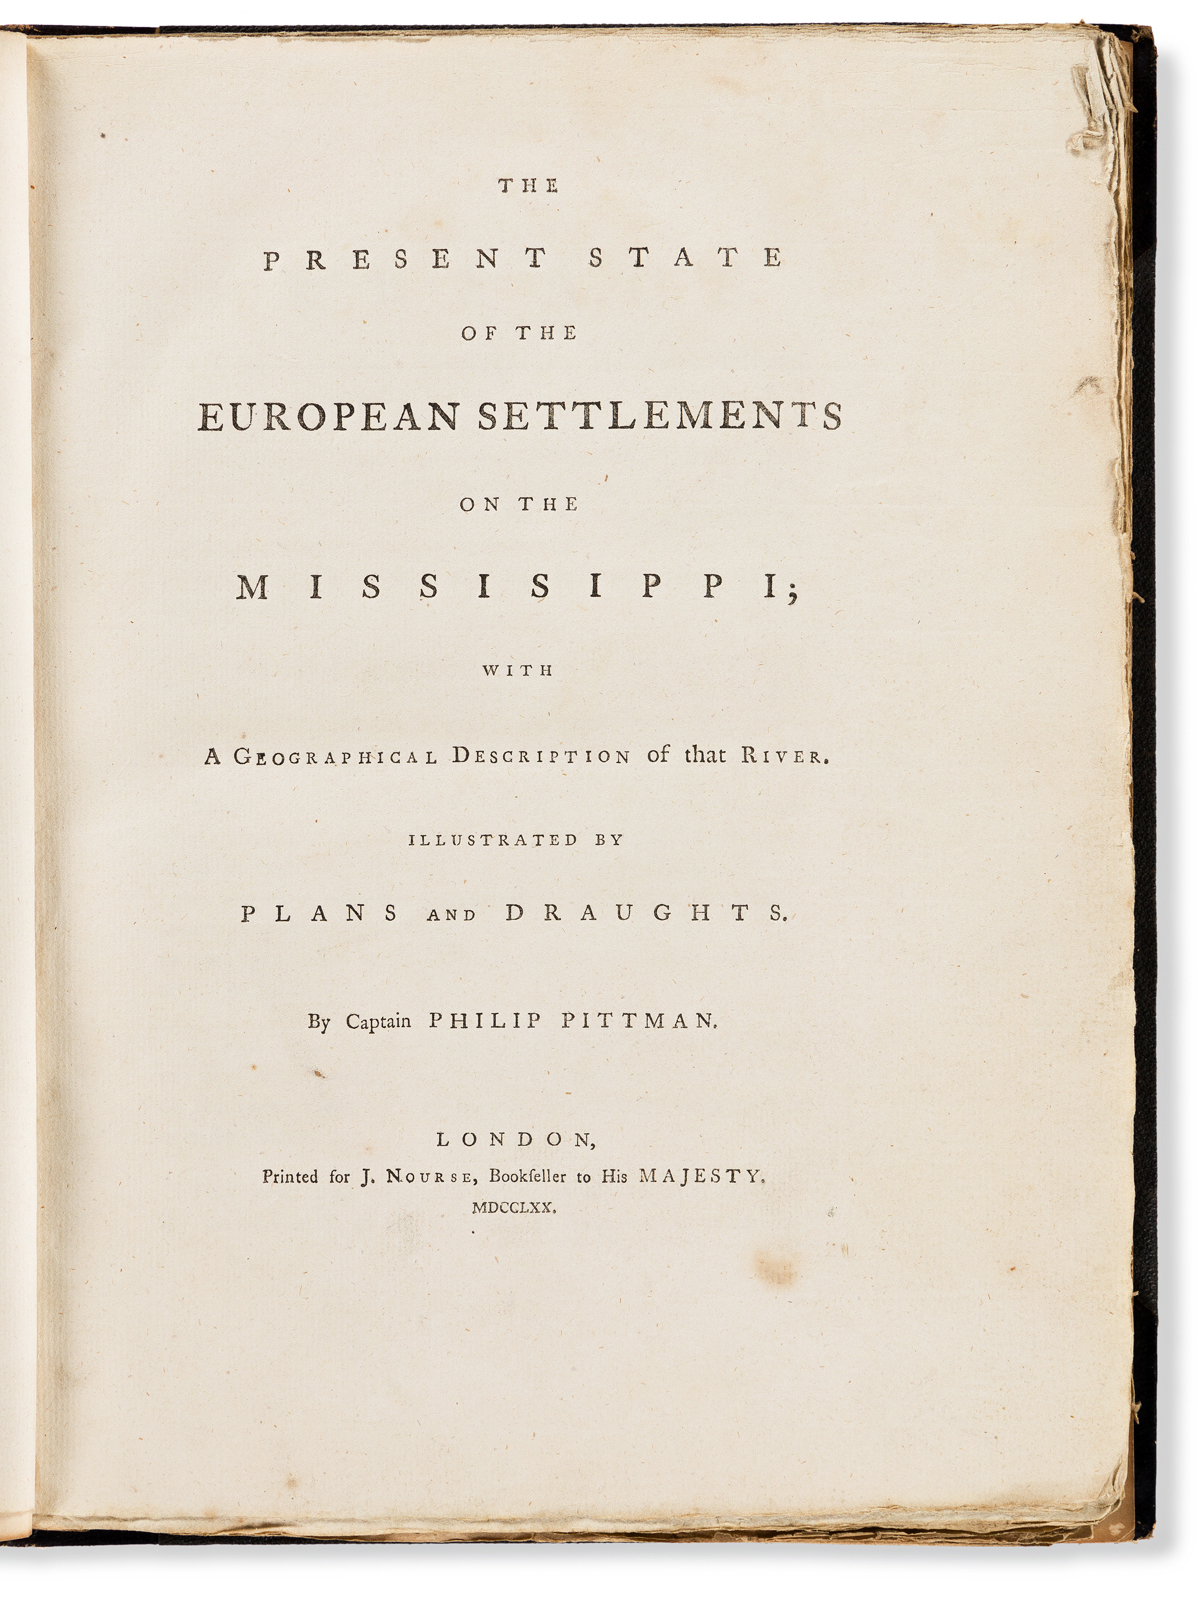 Pittman, Philip (fl. circa 1765) The Present State of the European Settlements on the Missisippi [sic] with a Geographical Description